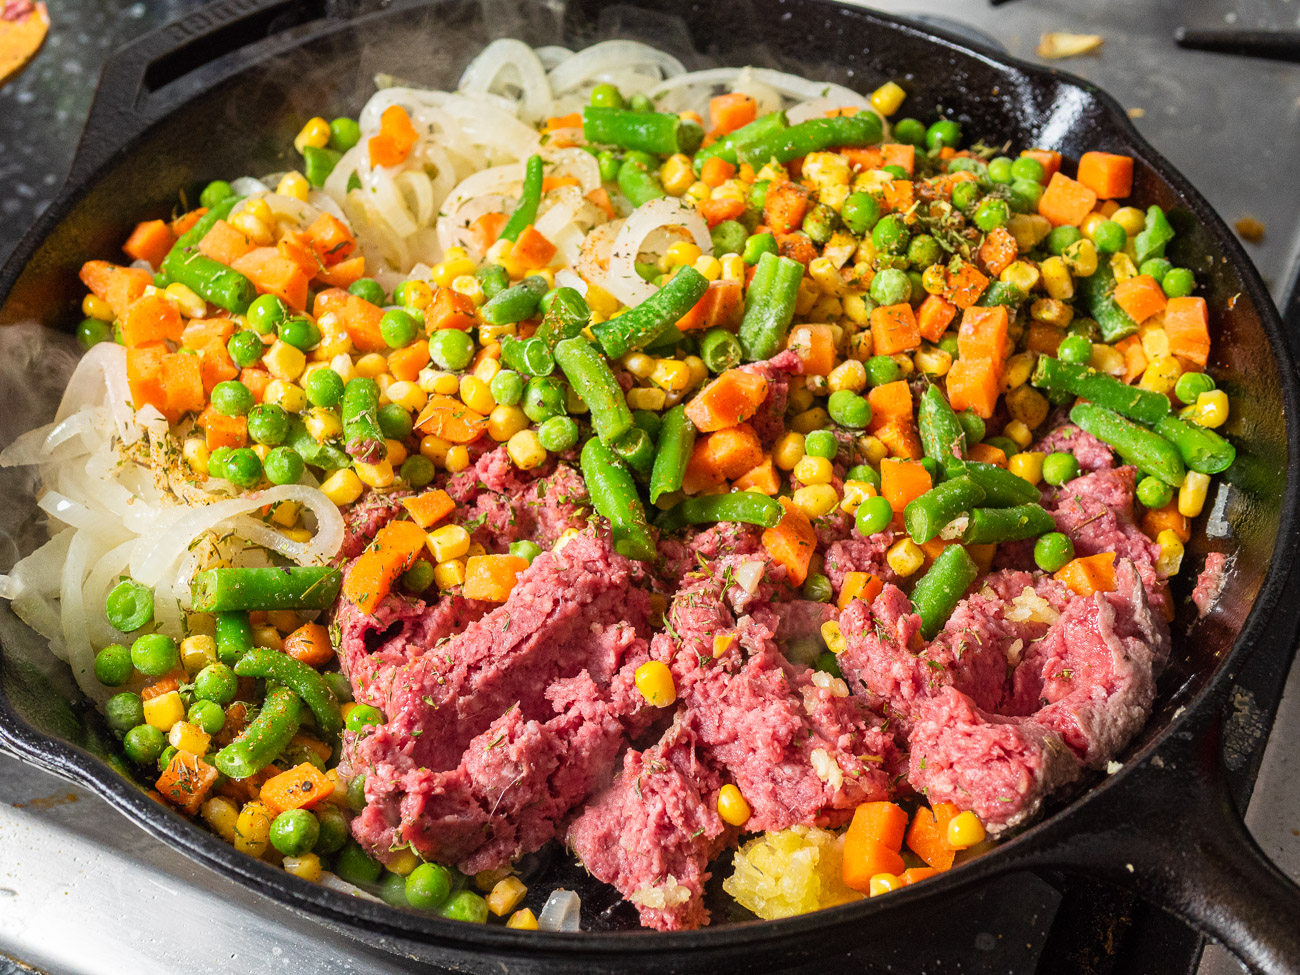 Push the onions to the side of the pan and stir in ground beef, thawed veggies, garlic, thyme, parsley, cayenne, and season with salt and pepper. Cook, breaking up the meat as it cooks, another 5 minutes until the meat is browned.